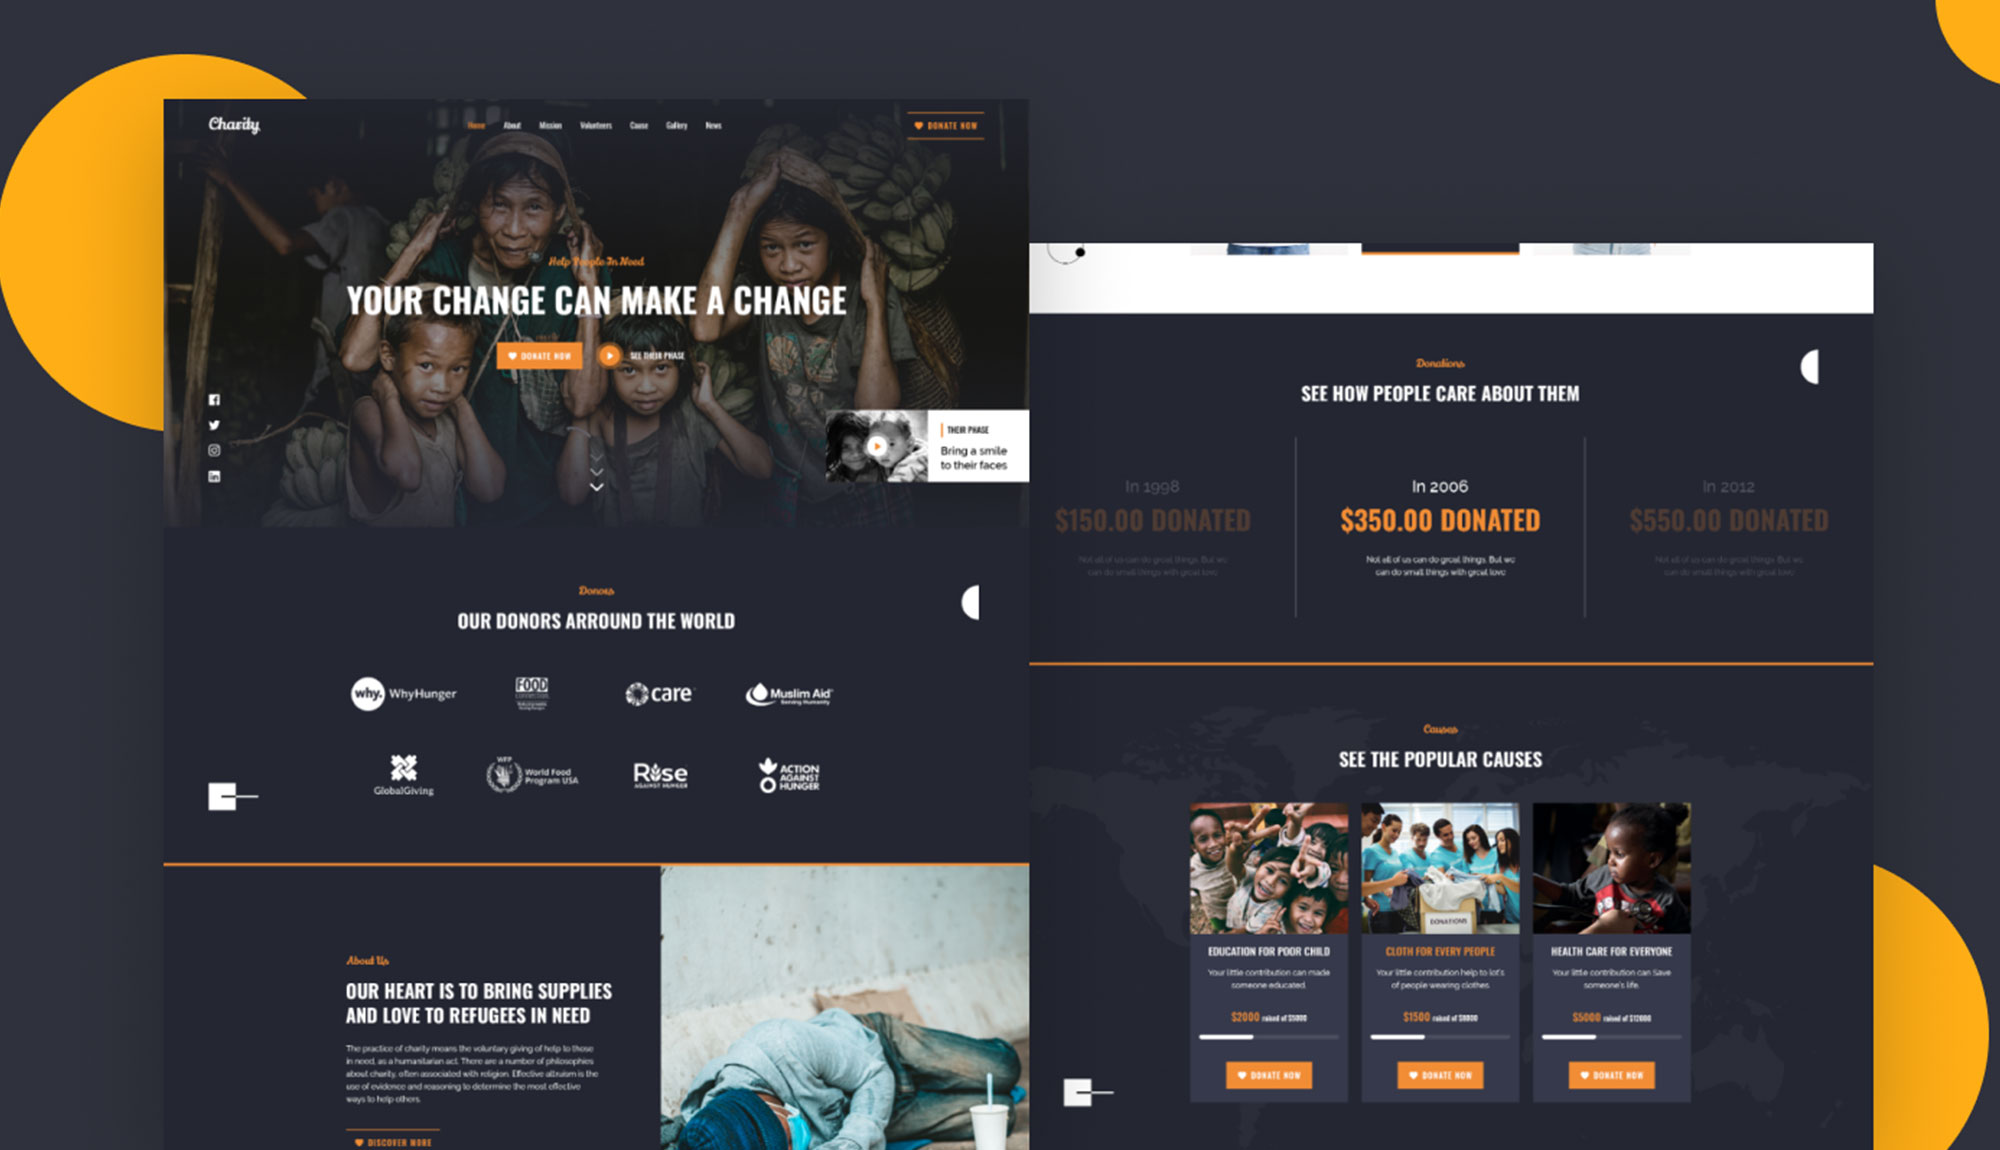 Hope - Charity/Non-profit Website Template